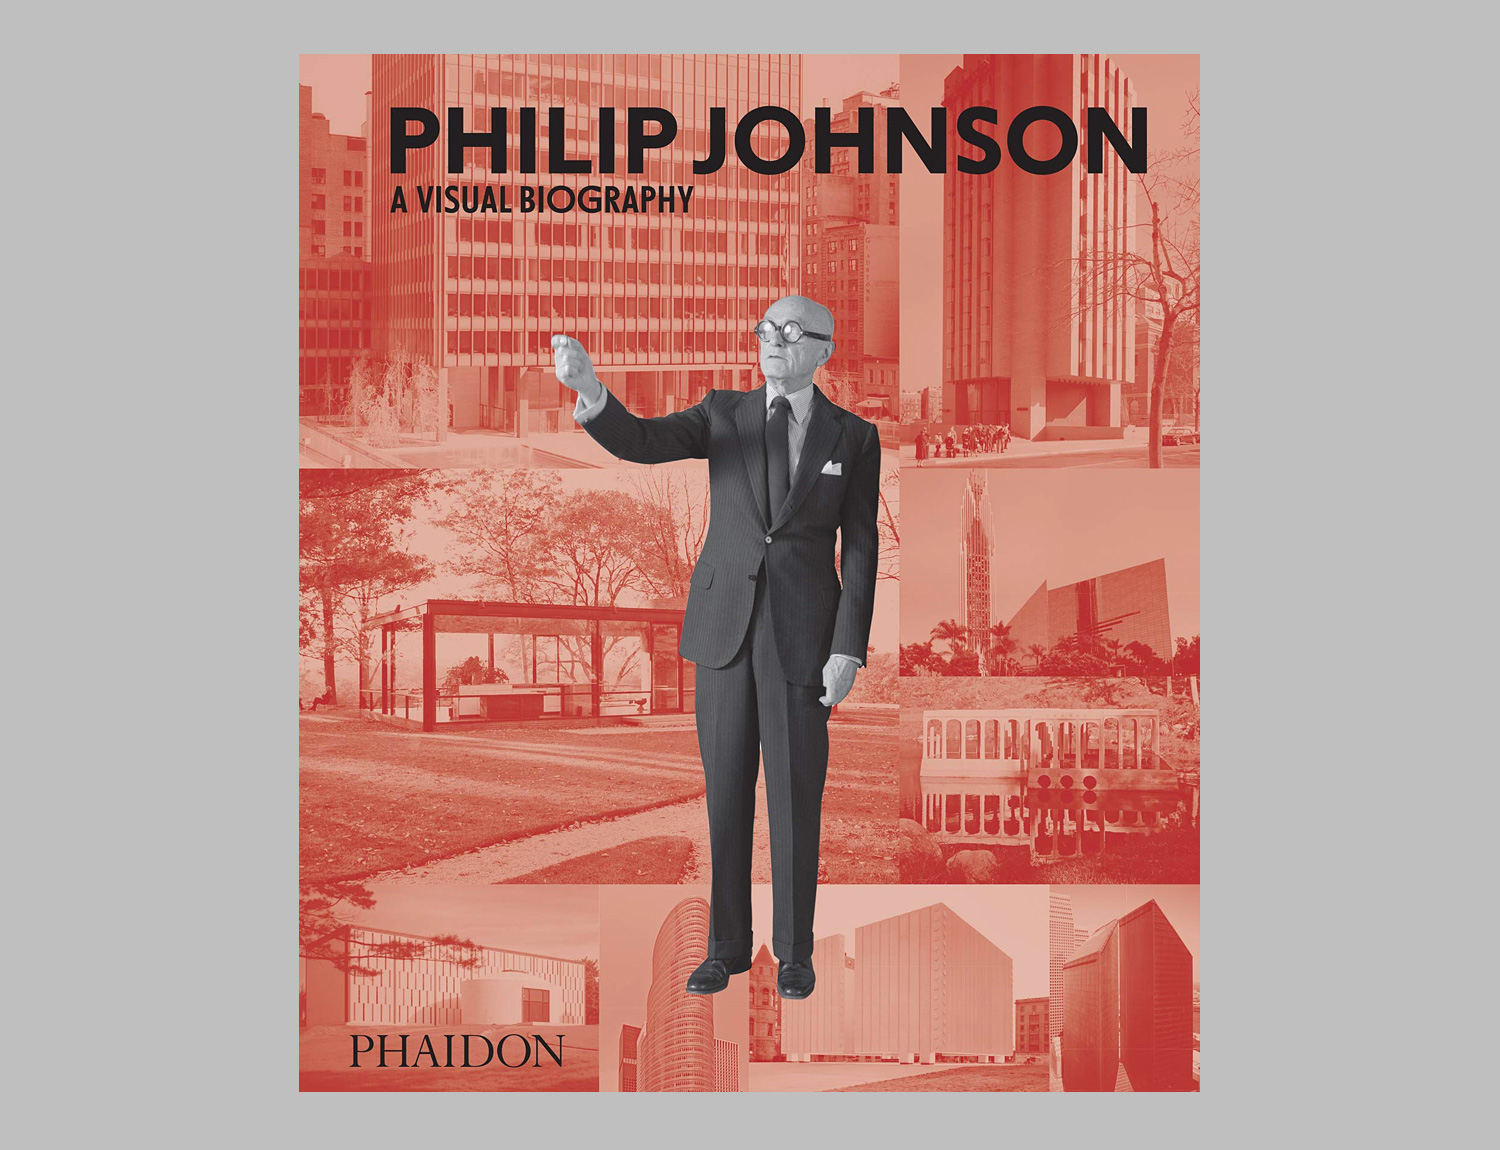 Philip Johnson: A Visual Biography at werd.com